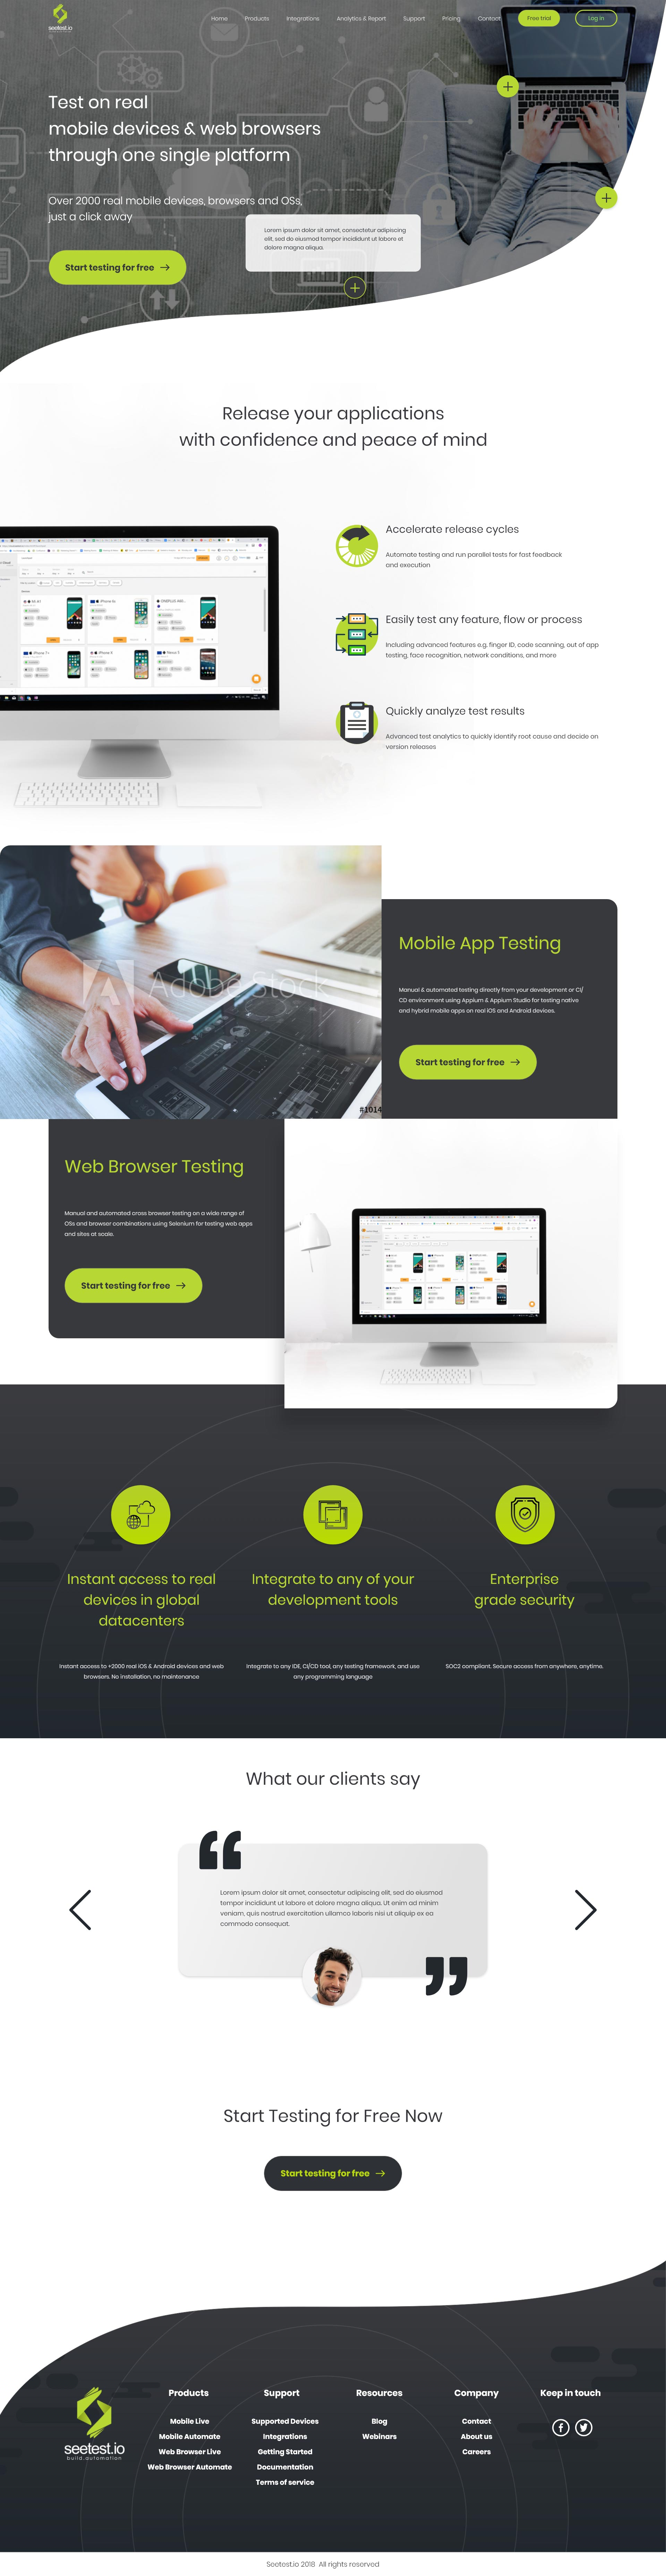 Seetest Homepage Concept Design